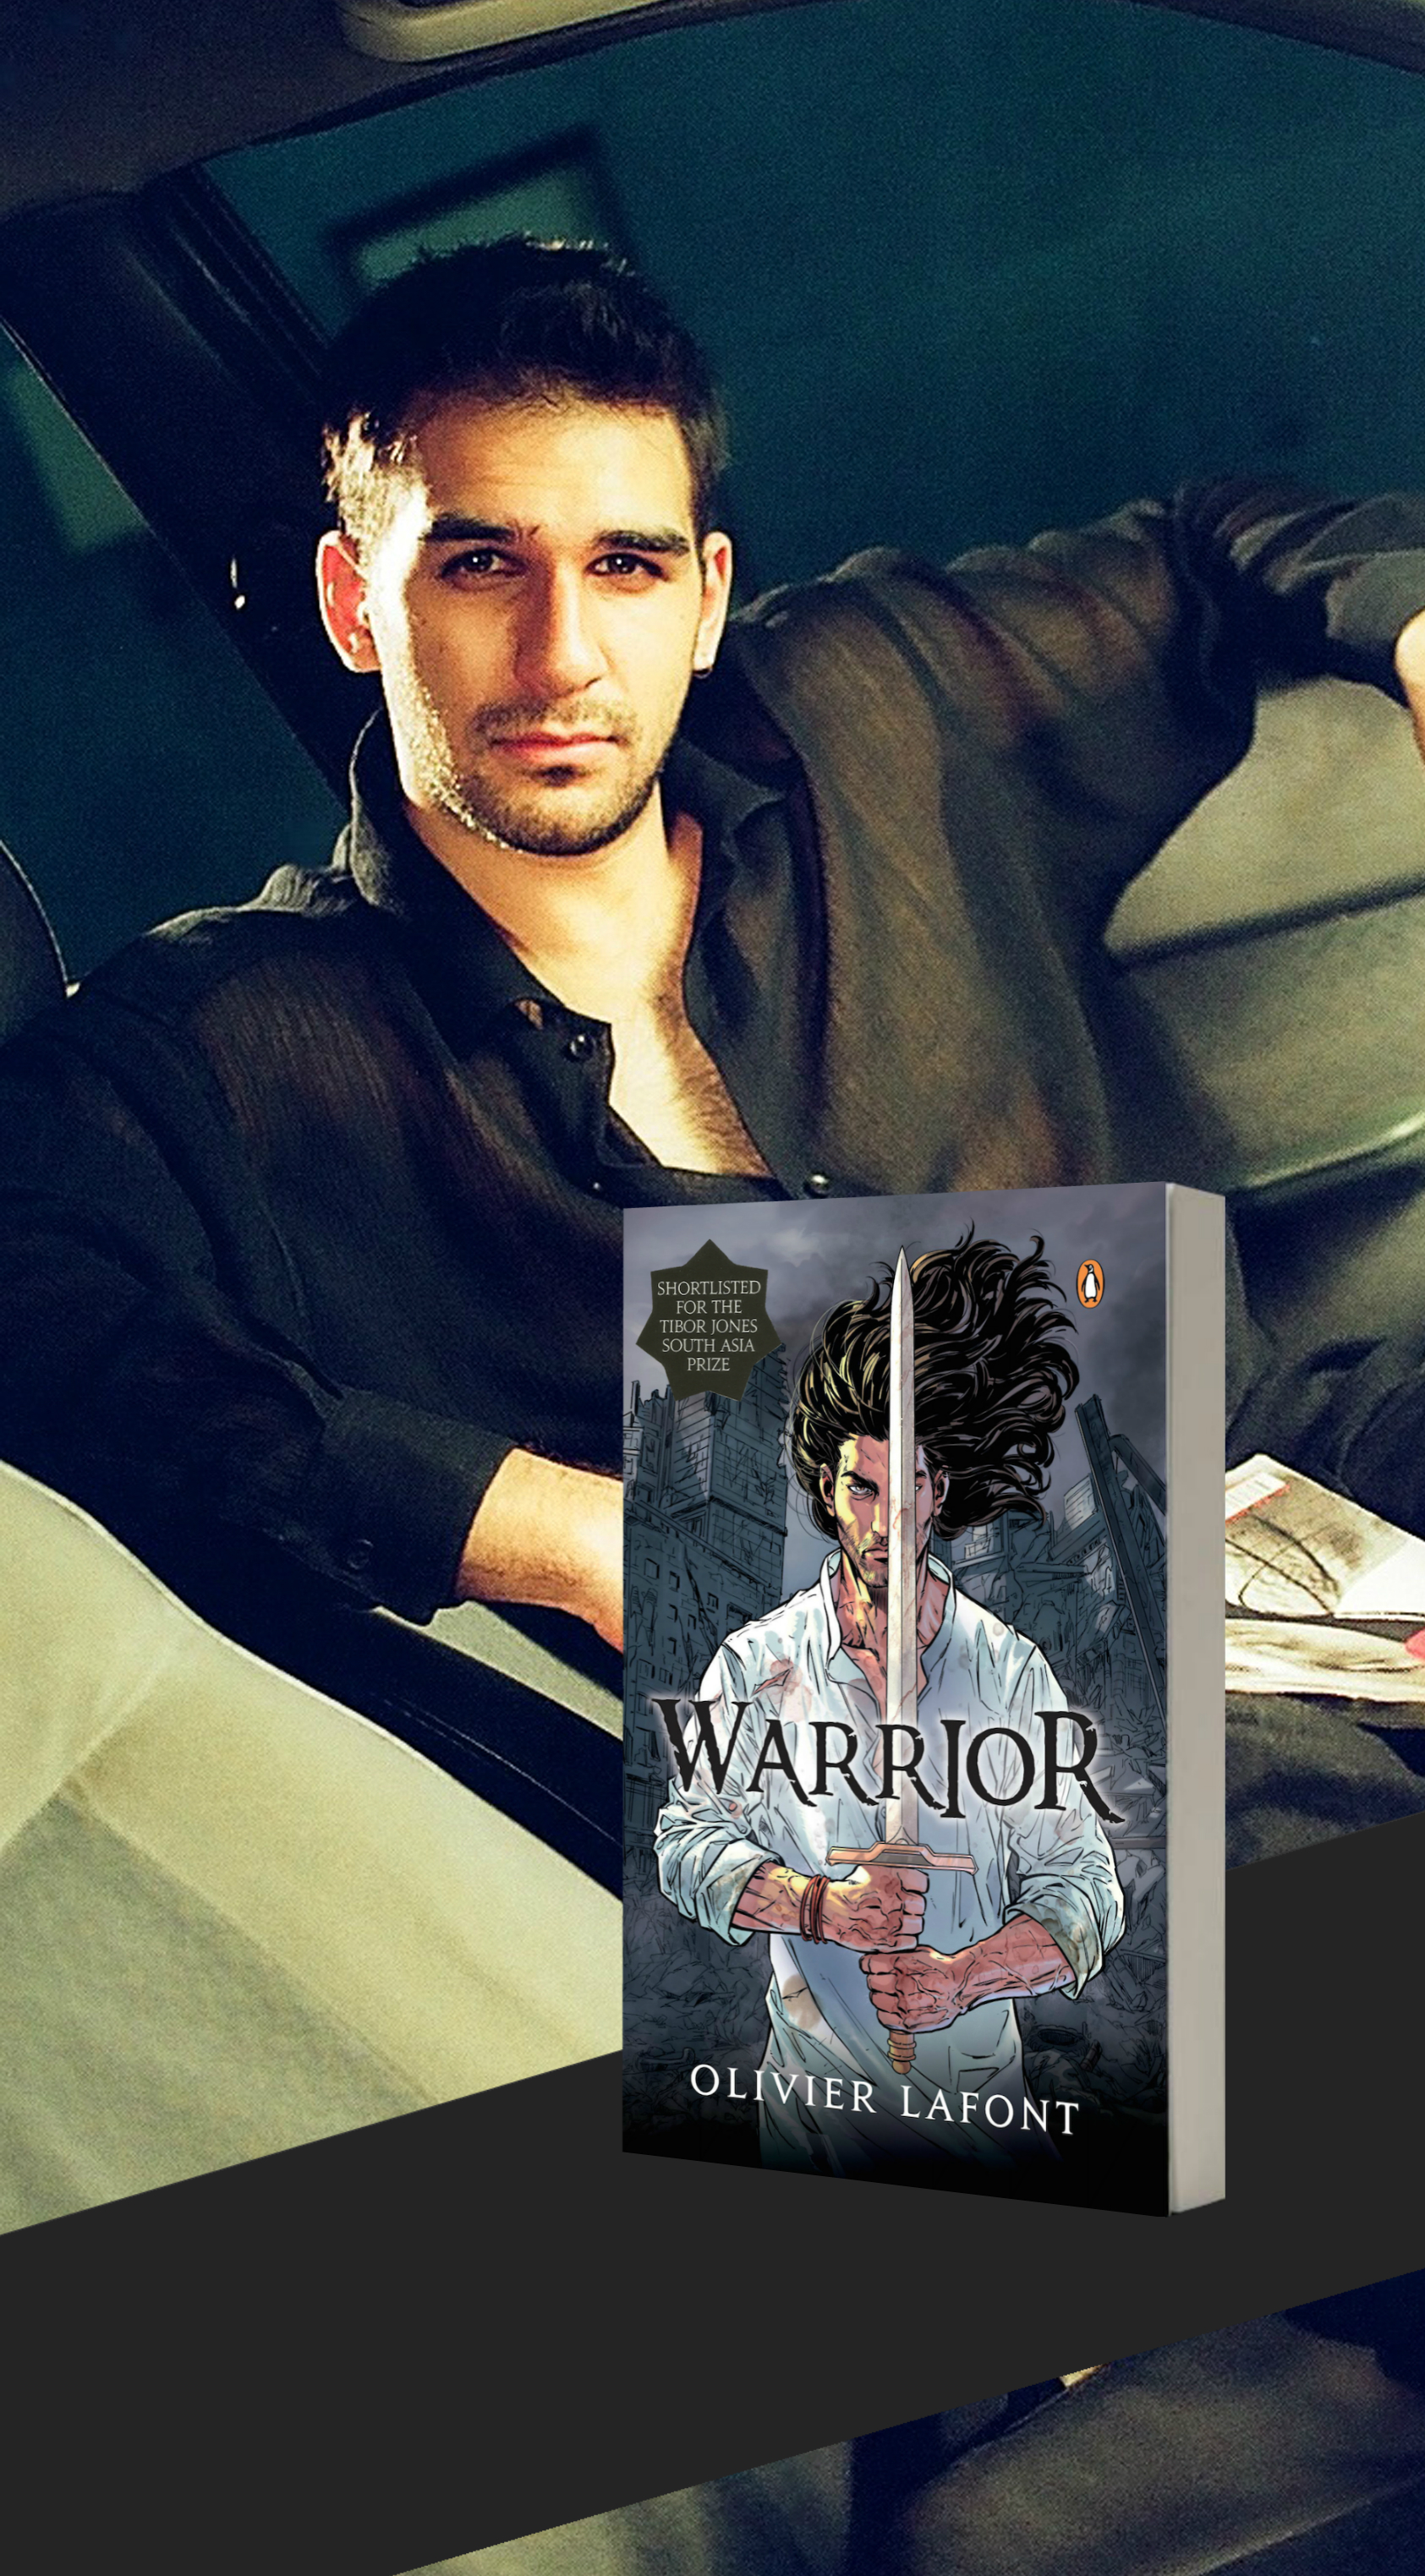 Olivier and Warrior